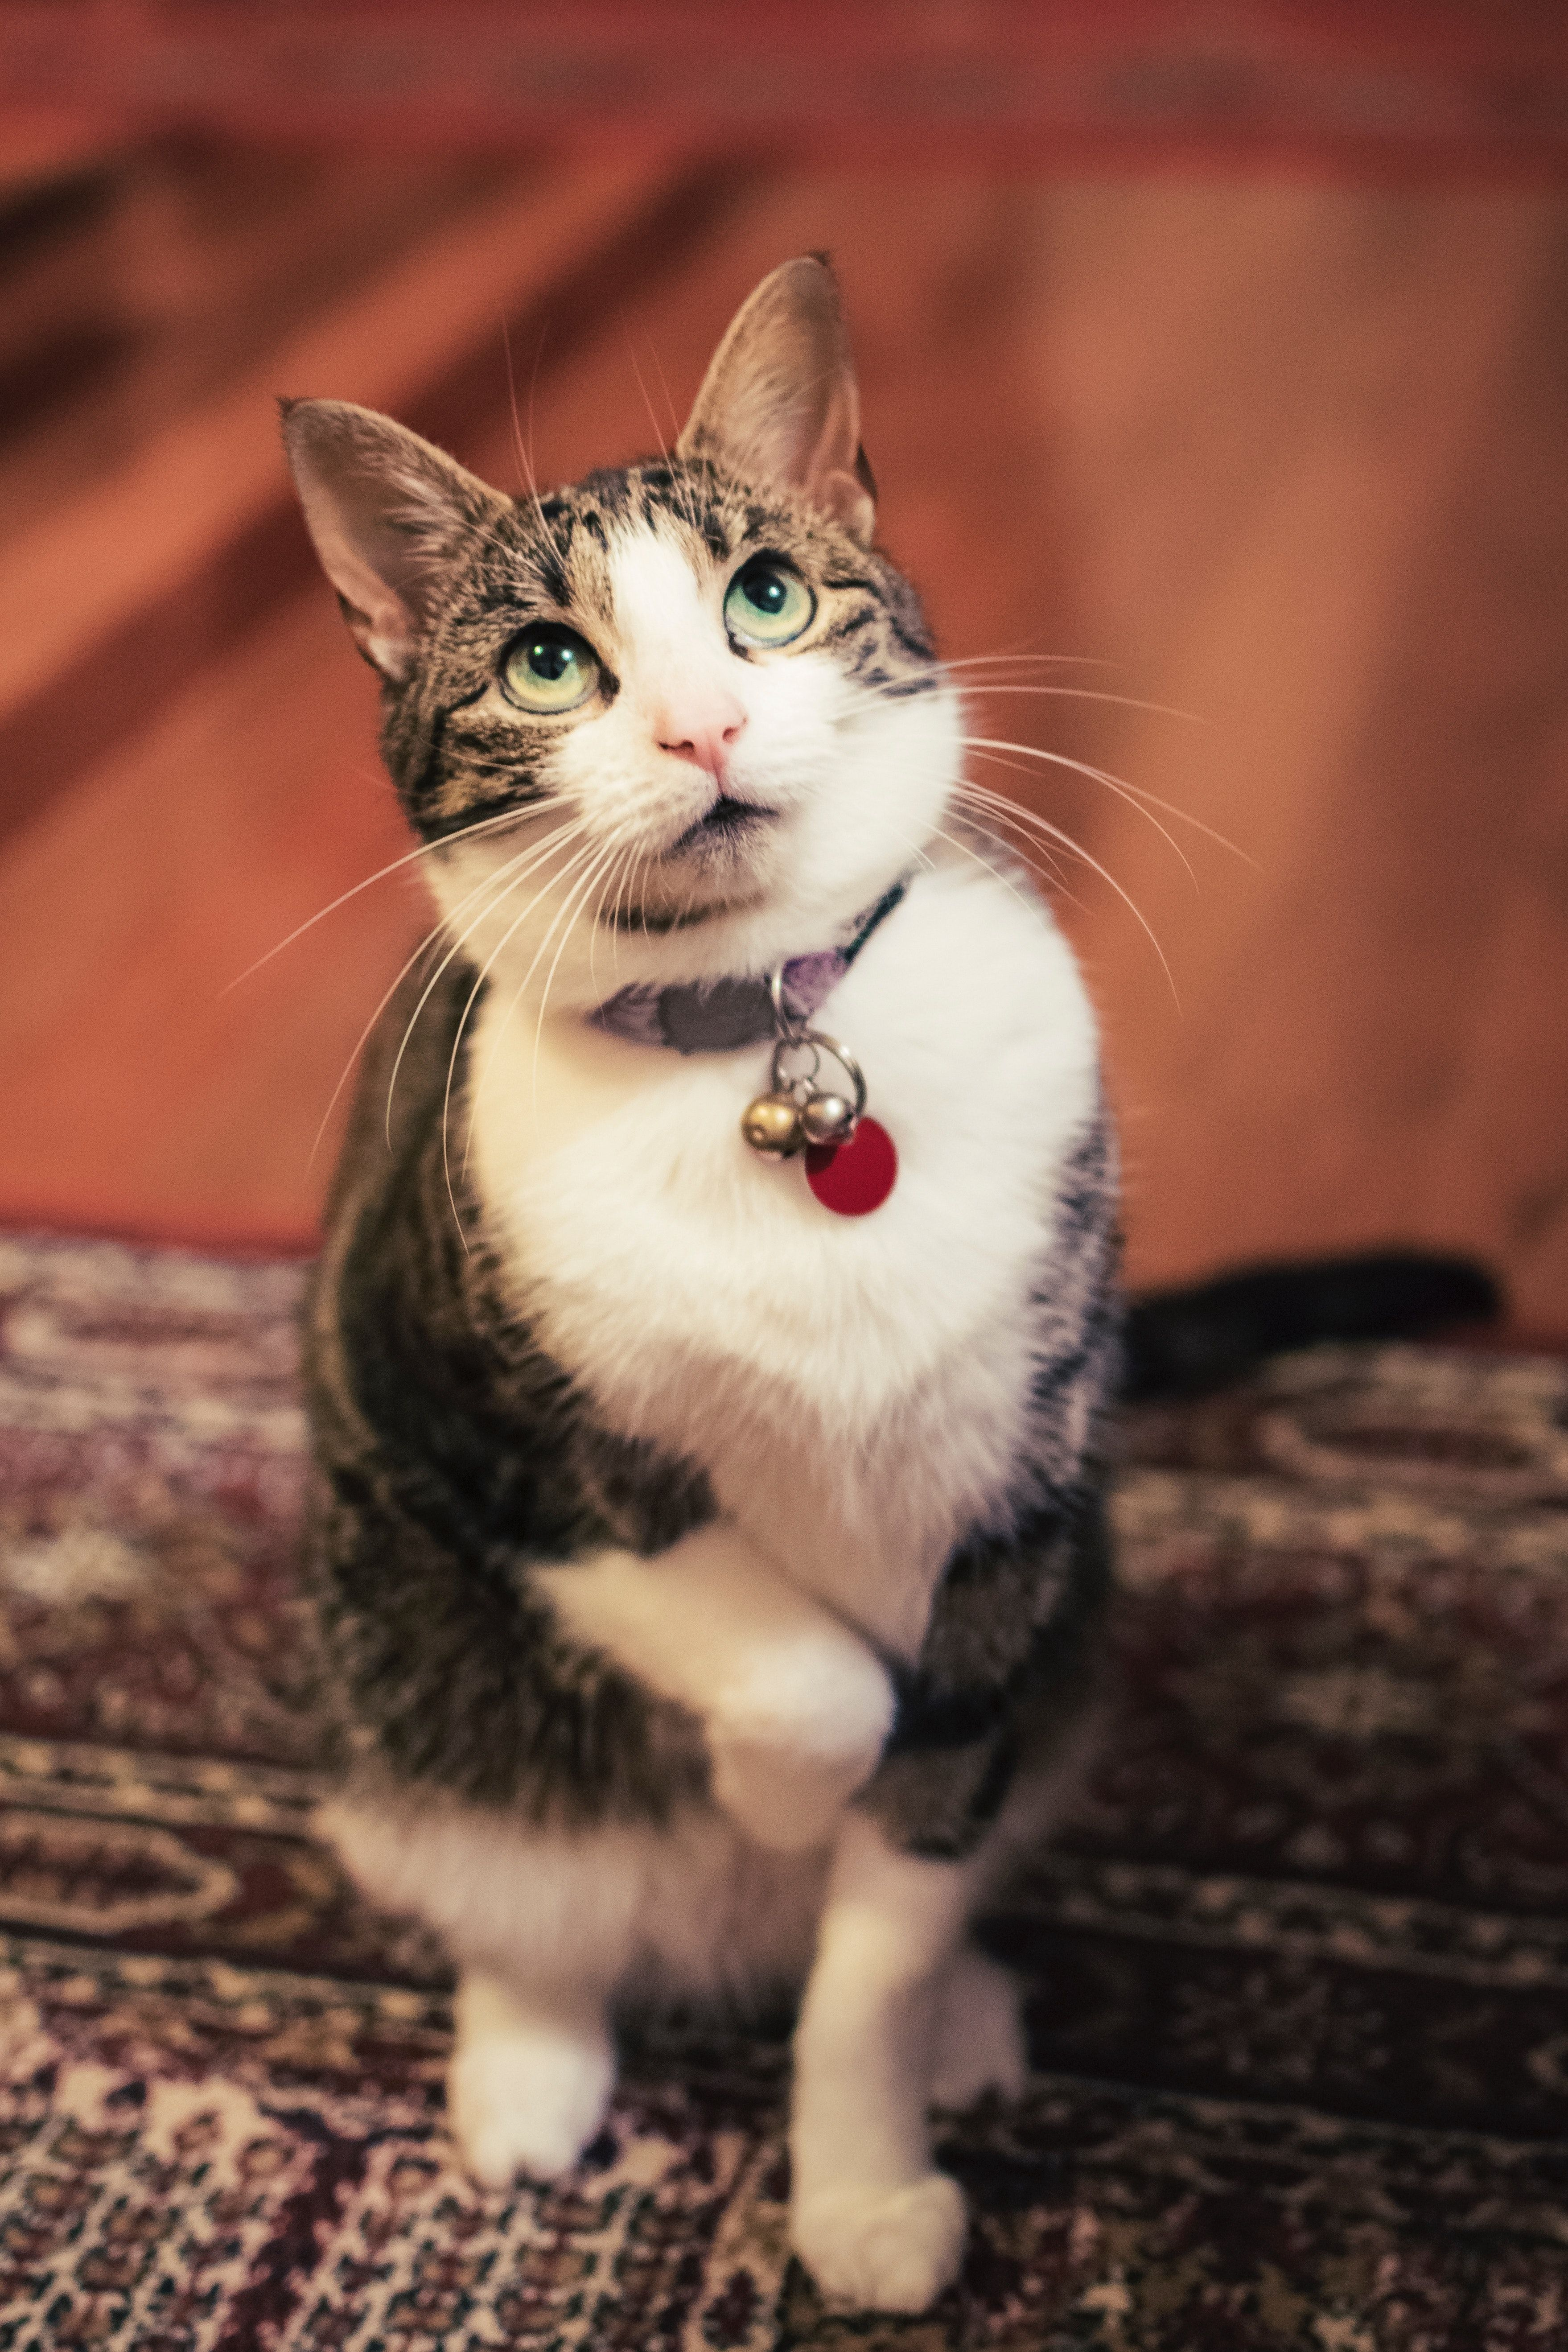 Cat With Beautiful Green Eyes In 2020 Cute Baby Cats Cats Snowshoe Cat